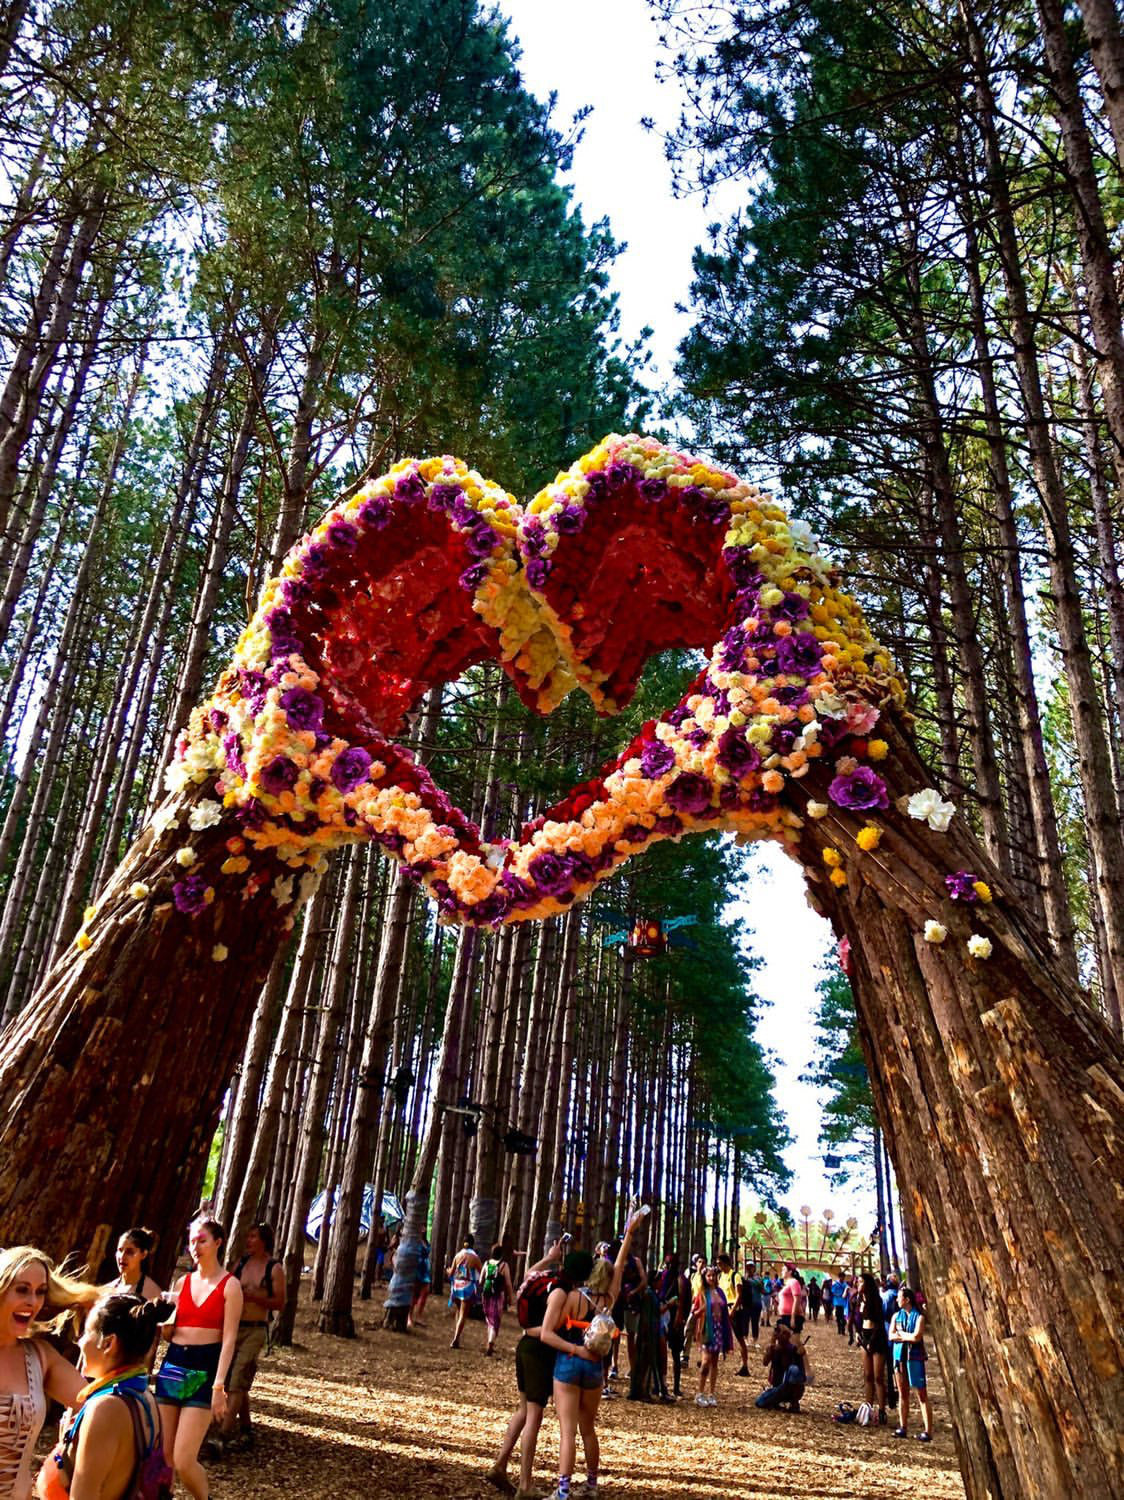 Ultimate guide to electric forest music festival. Blog post about electric forest. Tips to have the best experience at Electric Forest. Music festival pashmina. The perfect festival accessory. Super comfortable pashmina scarf.